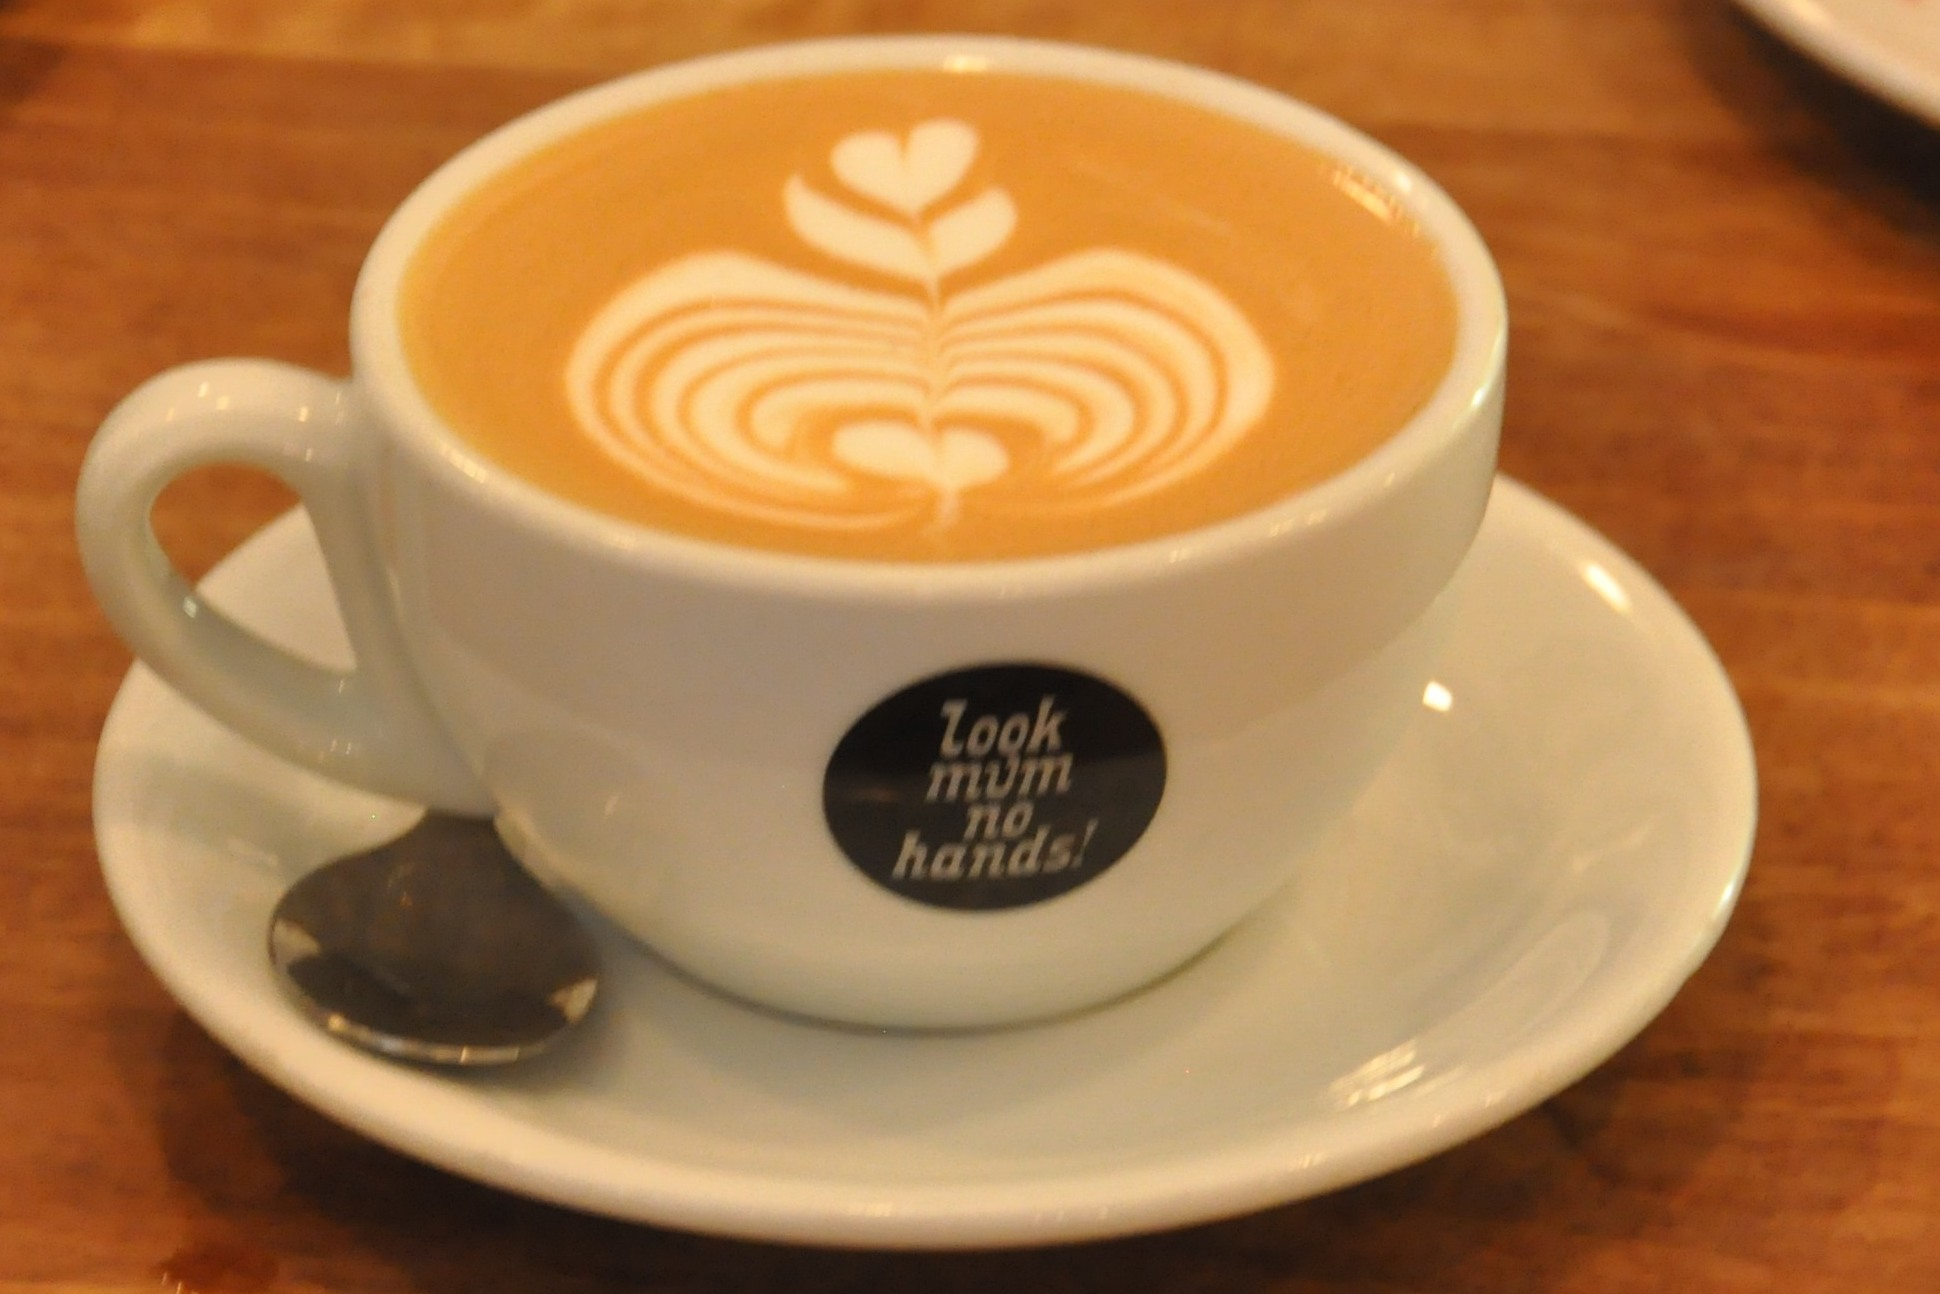 A flat white, with lovely latte art, in a classic white bowl cup, with the Look Mum No Hands! logo on the front